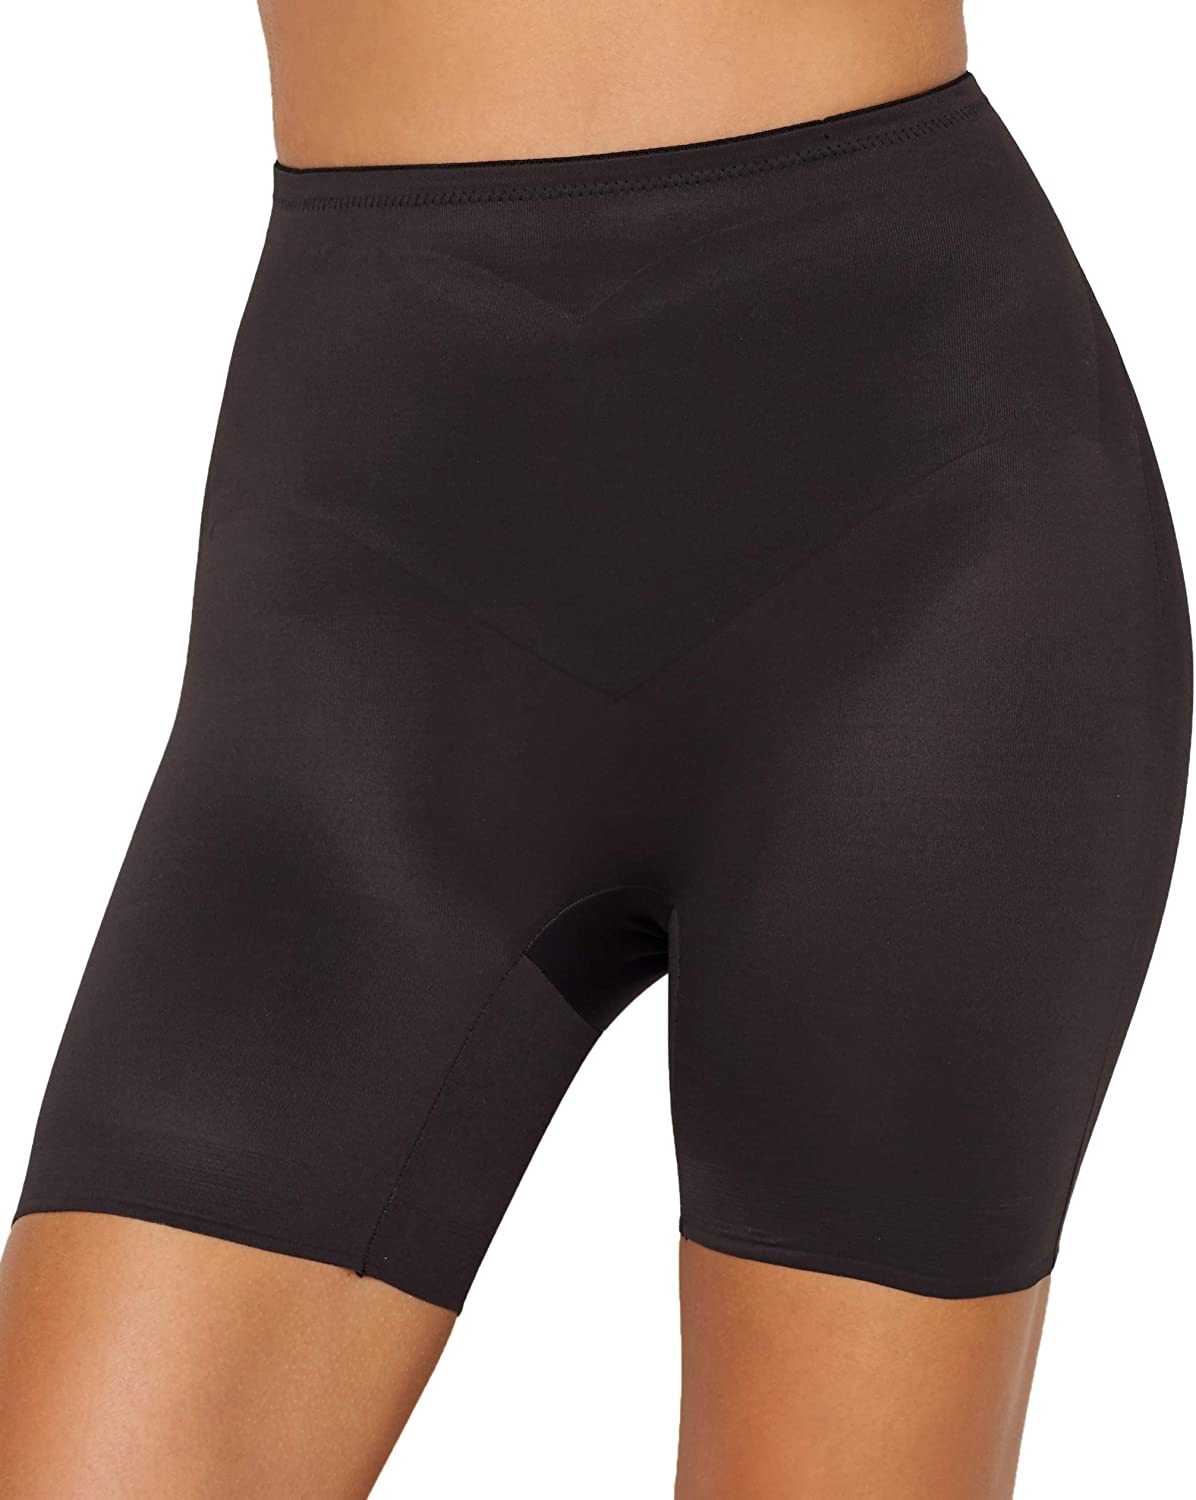 TC Fine Intimates Adjust Perfect Firm Control Shaping Shorts